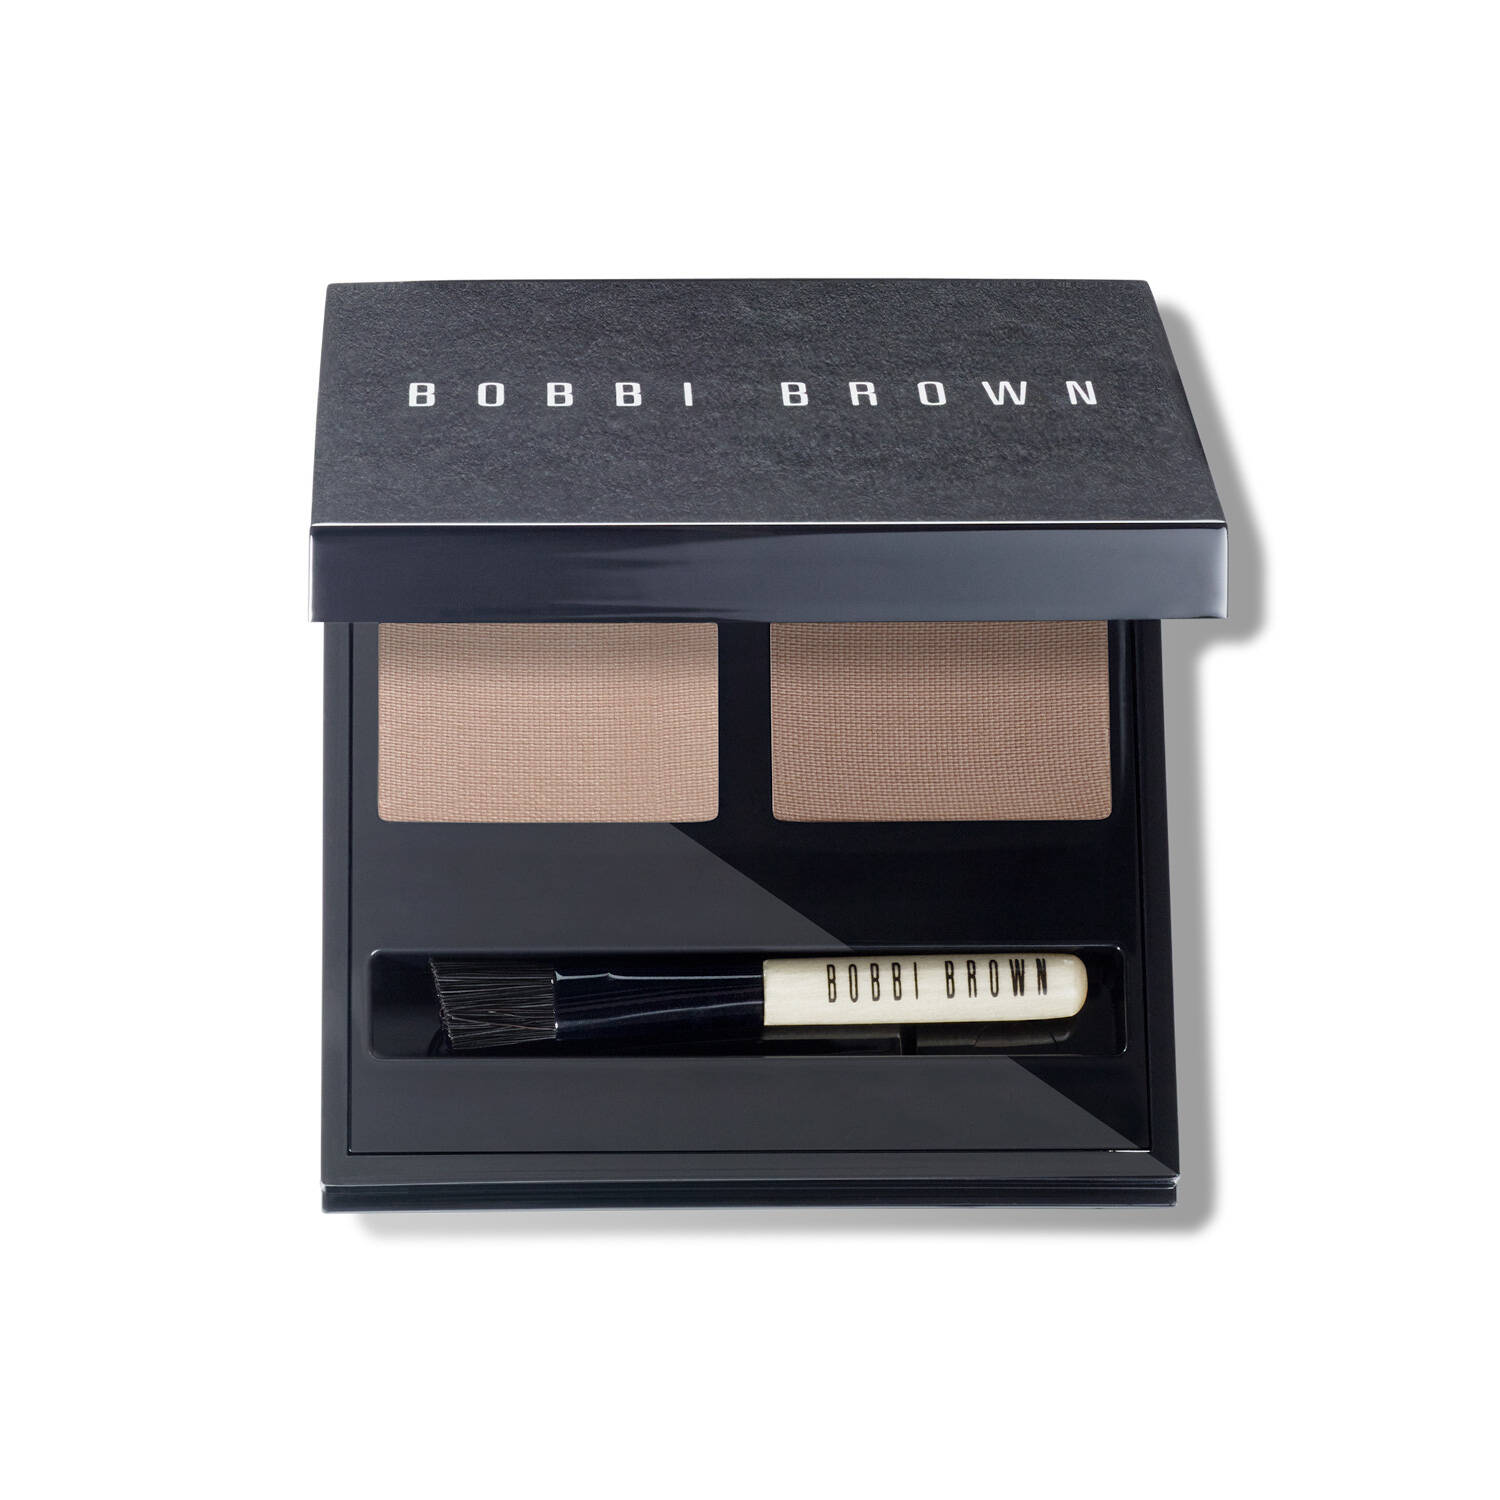 Bobbi Brown Brow Kit - Light (3 g) Make Up, Augen, Augenbrauen, Augen von Bobbi Brown